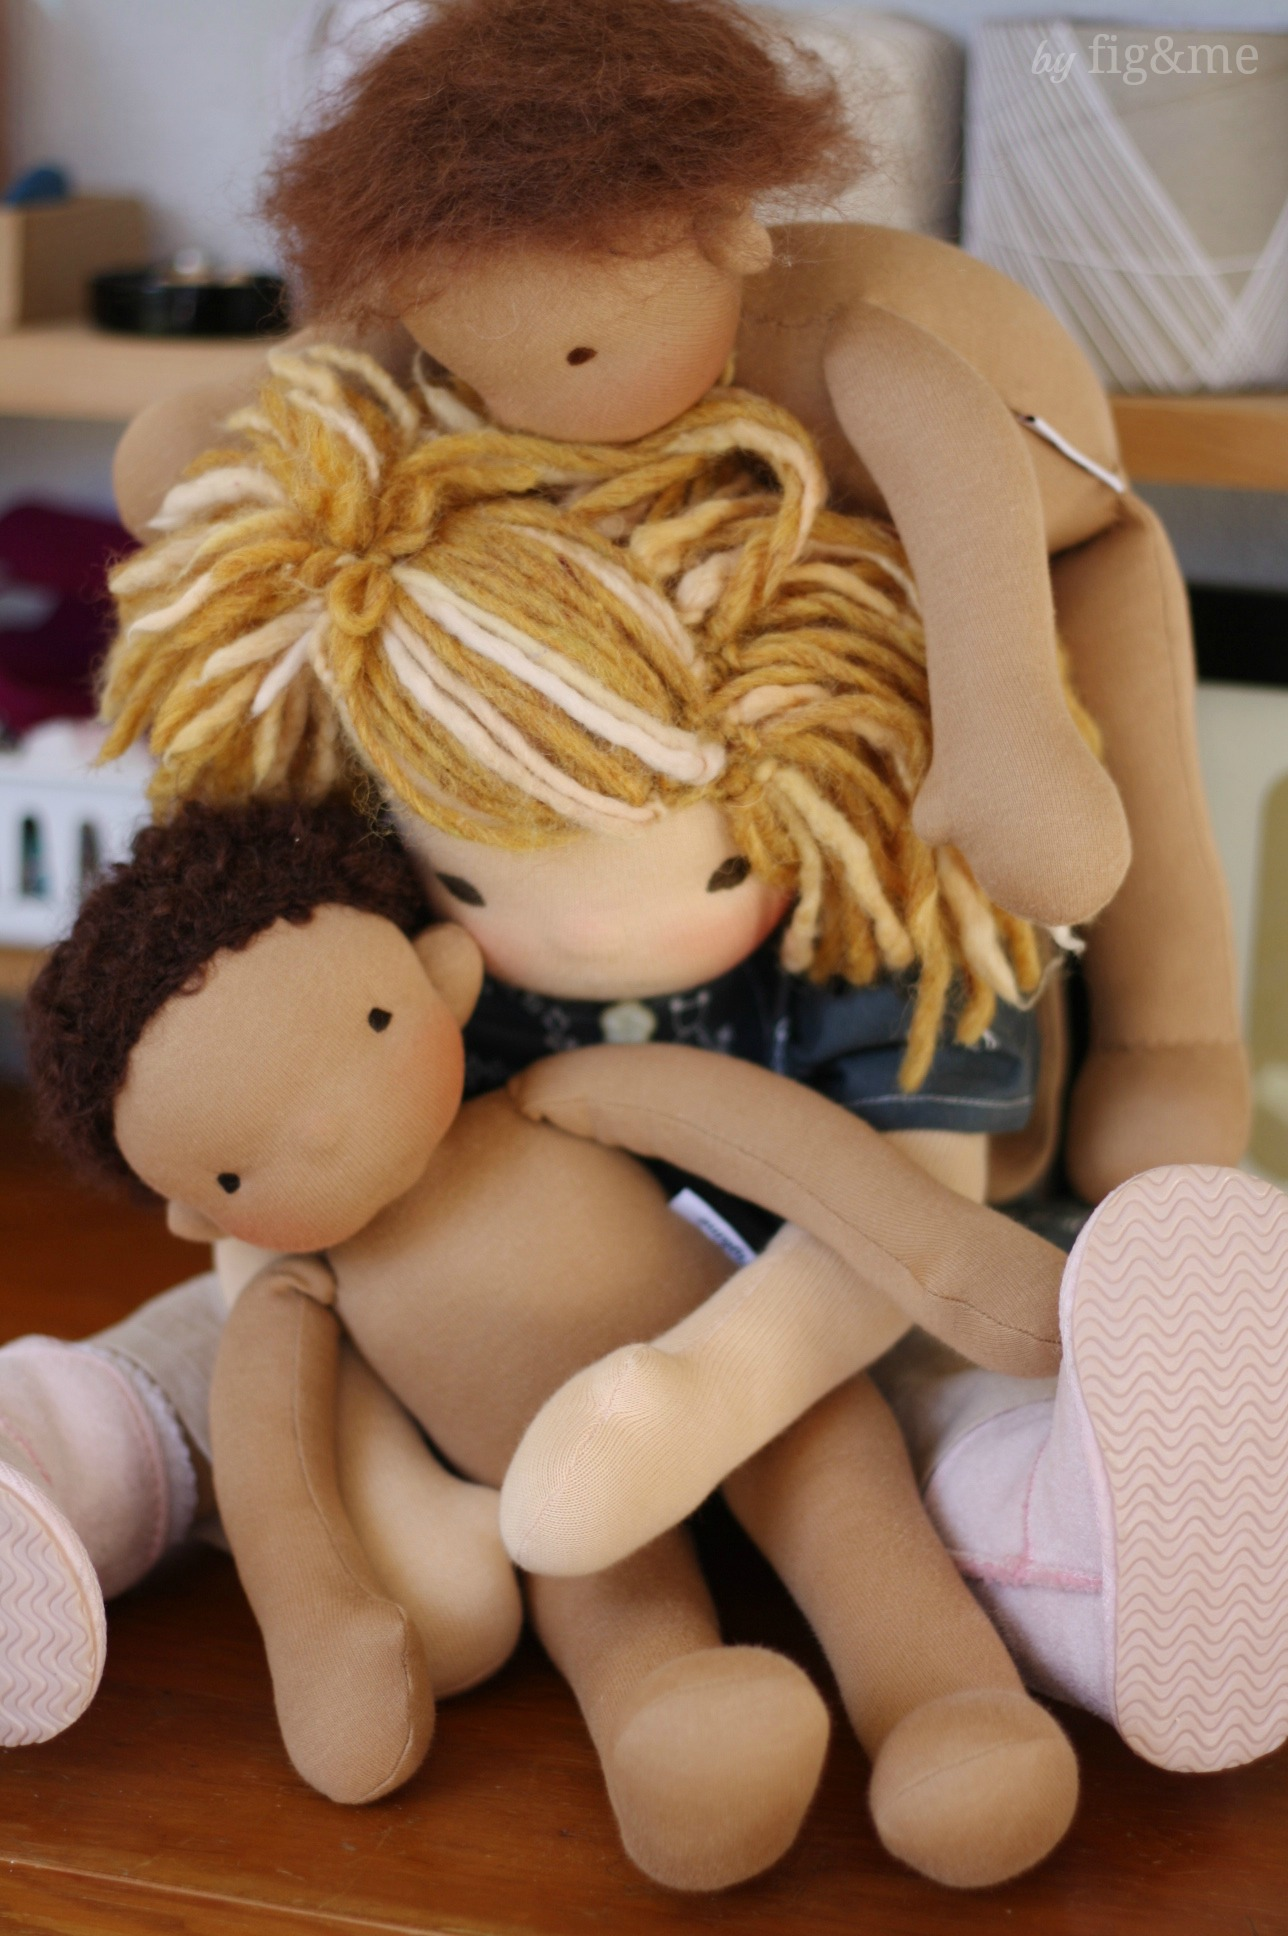 A stack of dolls, by Fig and me.